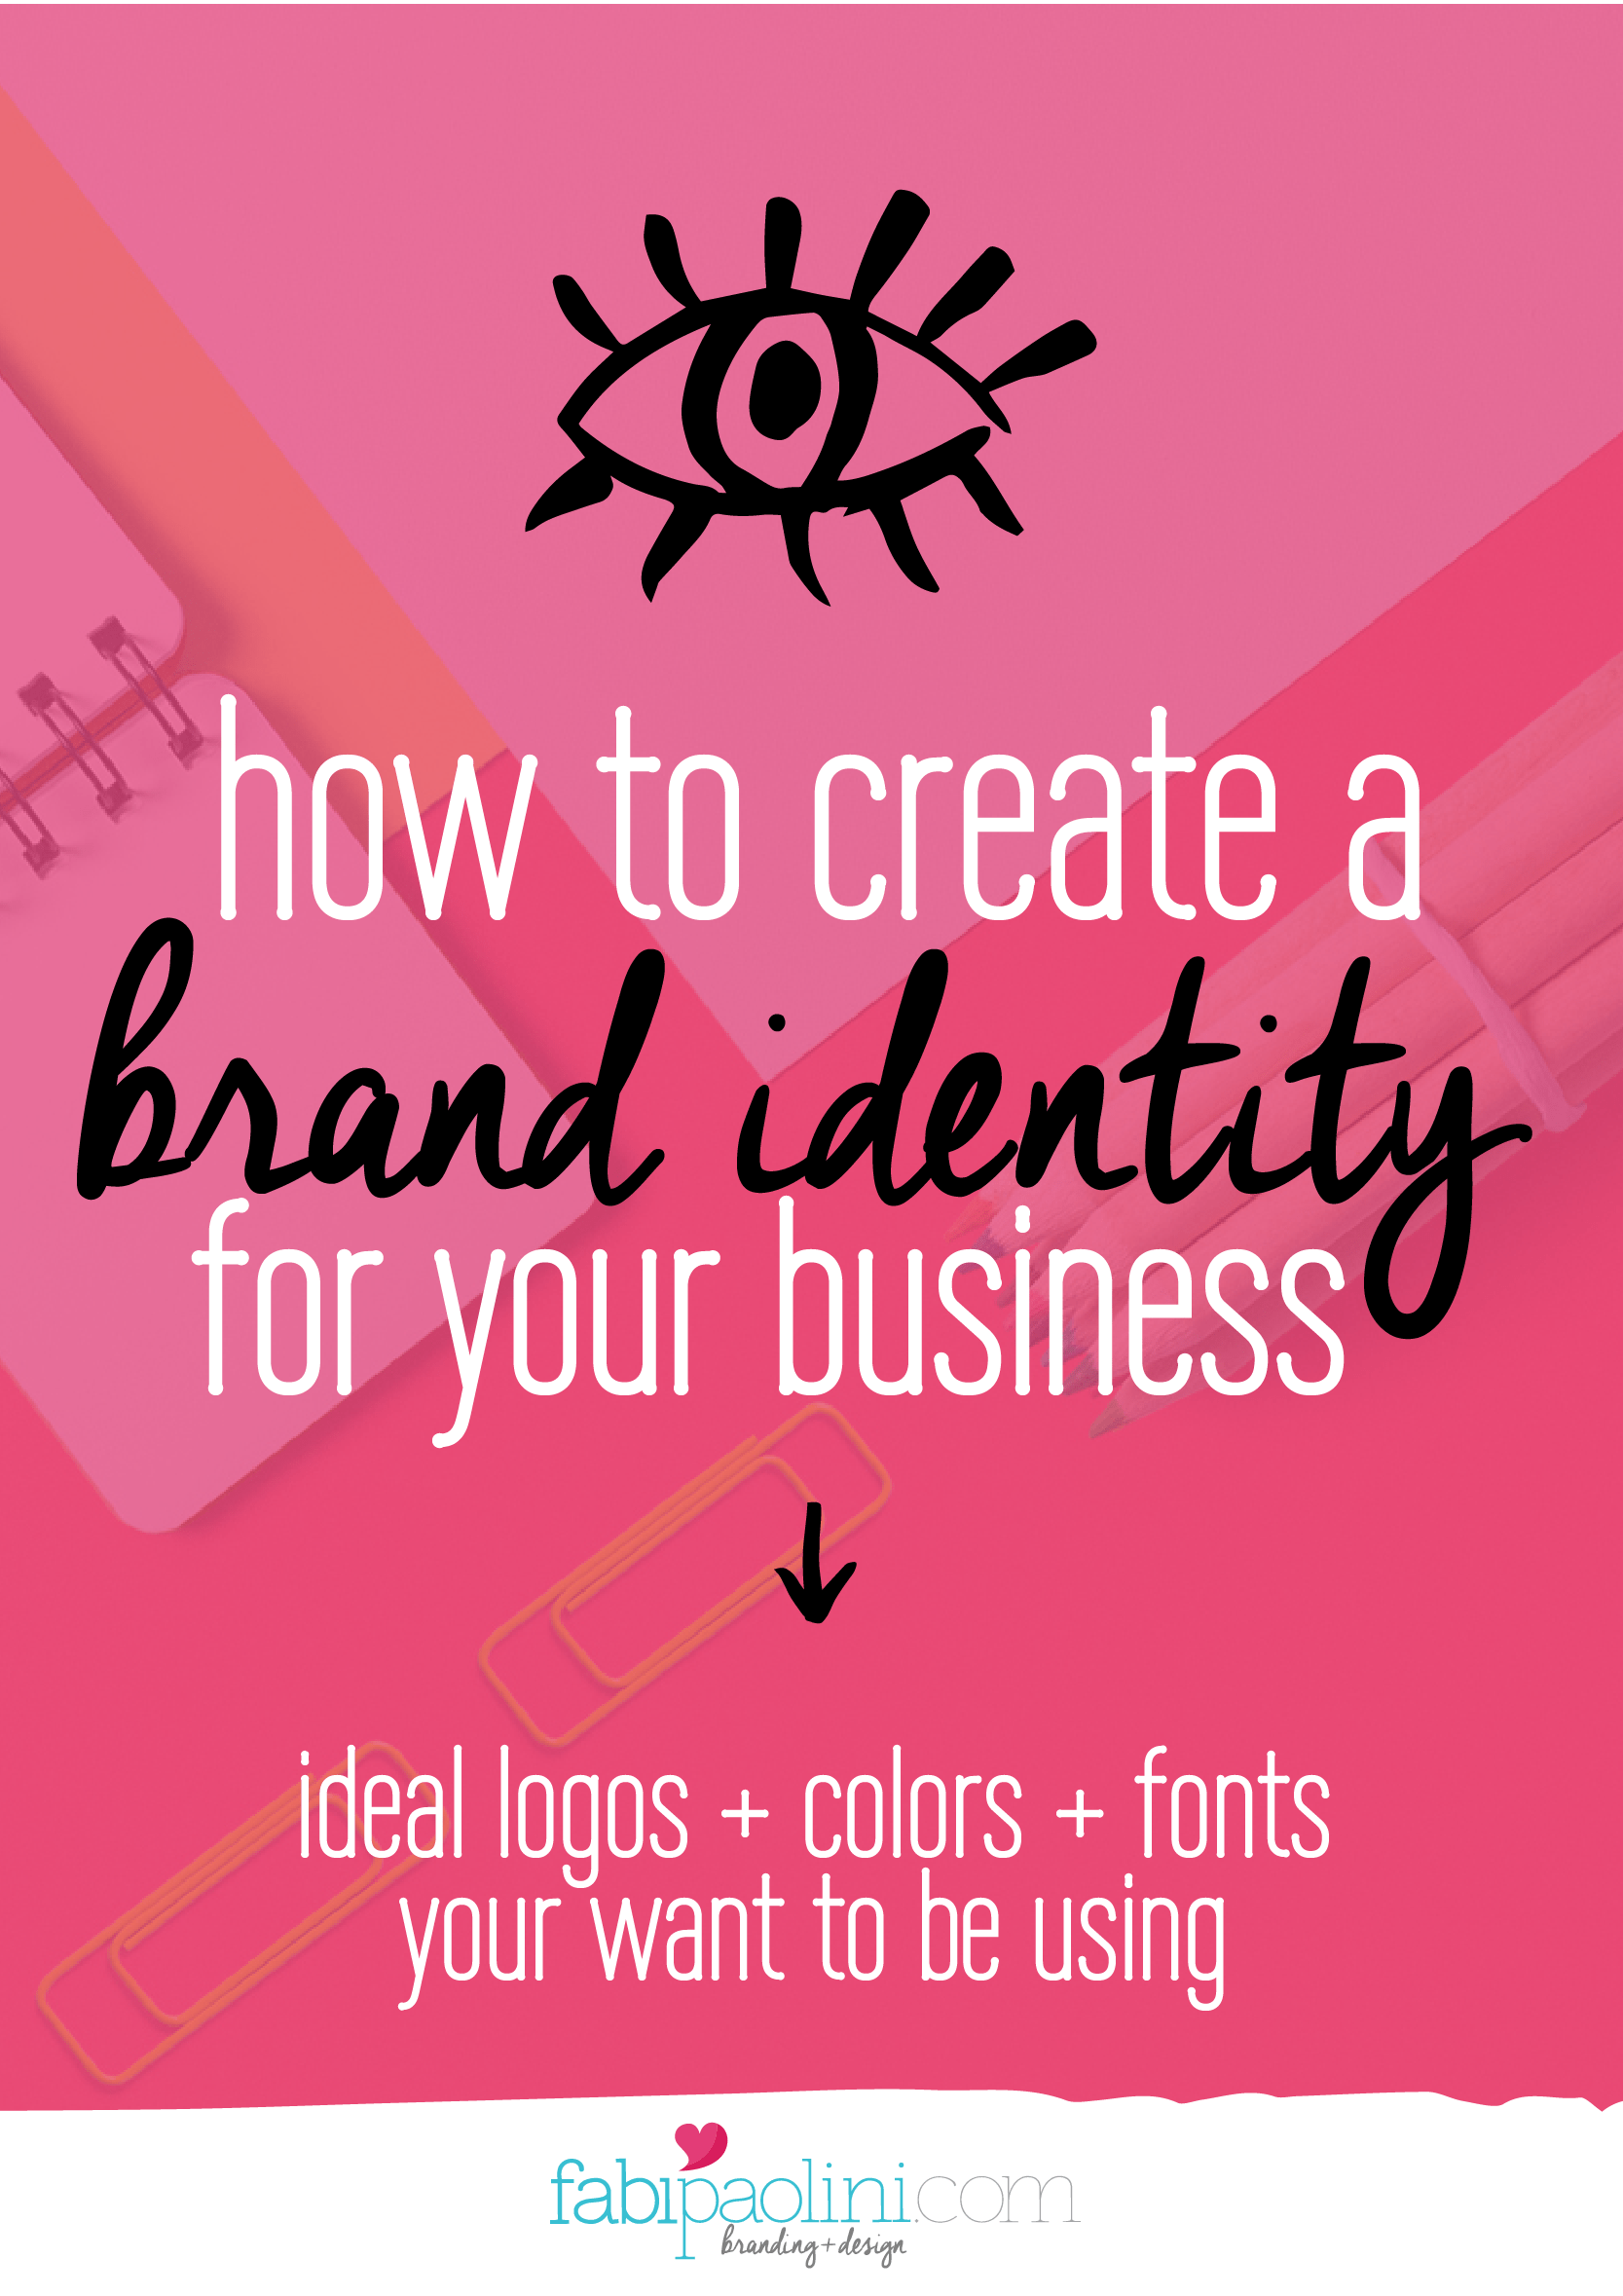 This guide on how to brand your business will really help with tips ideas and advice for creating a brand identity and choosing logo, fonts and colors for your business. Read it to download the free 15 page guide inside!